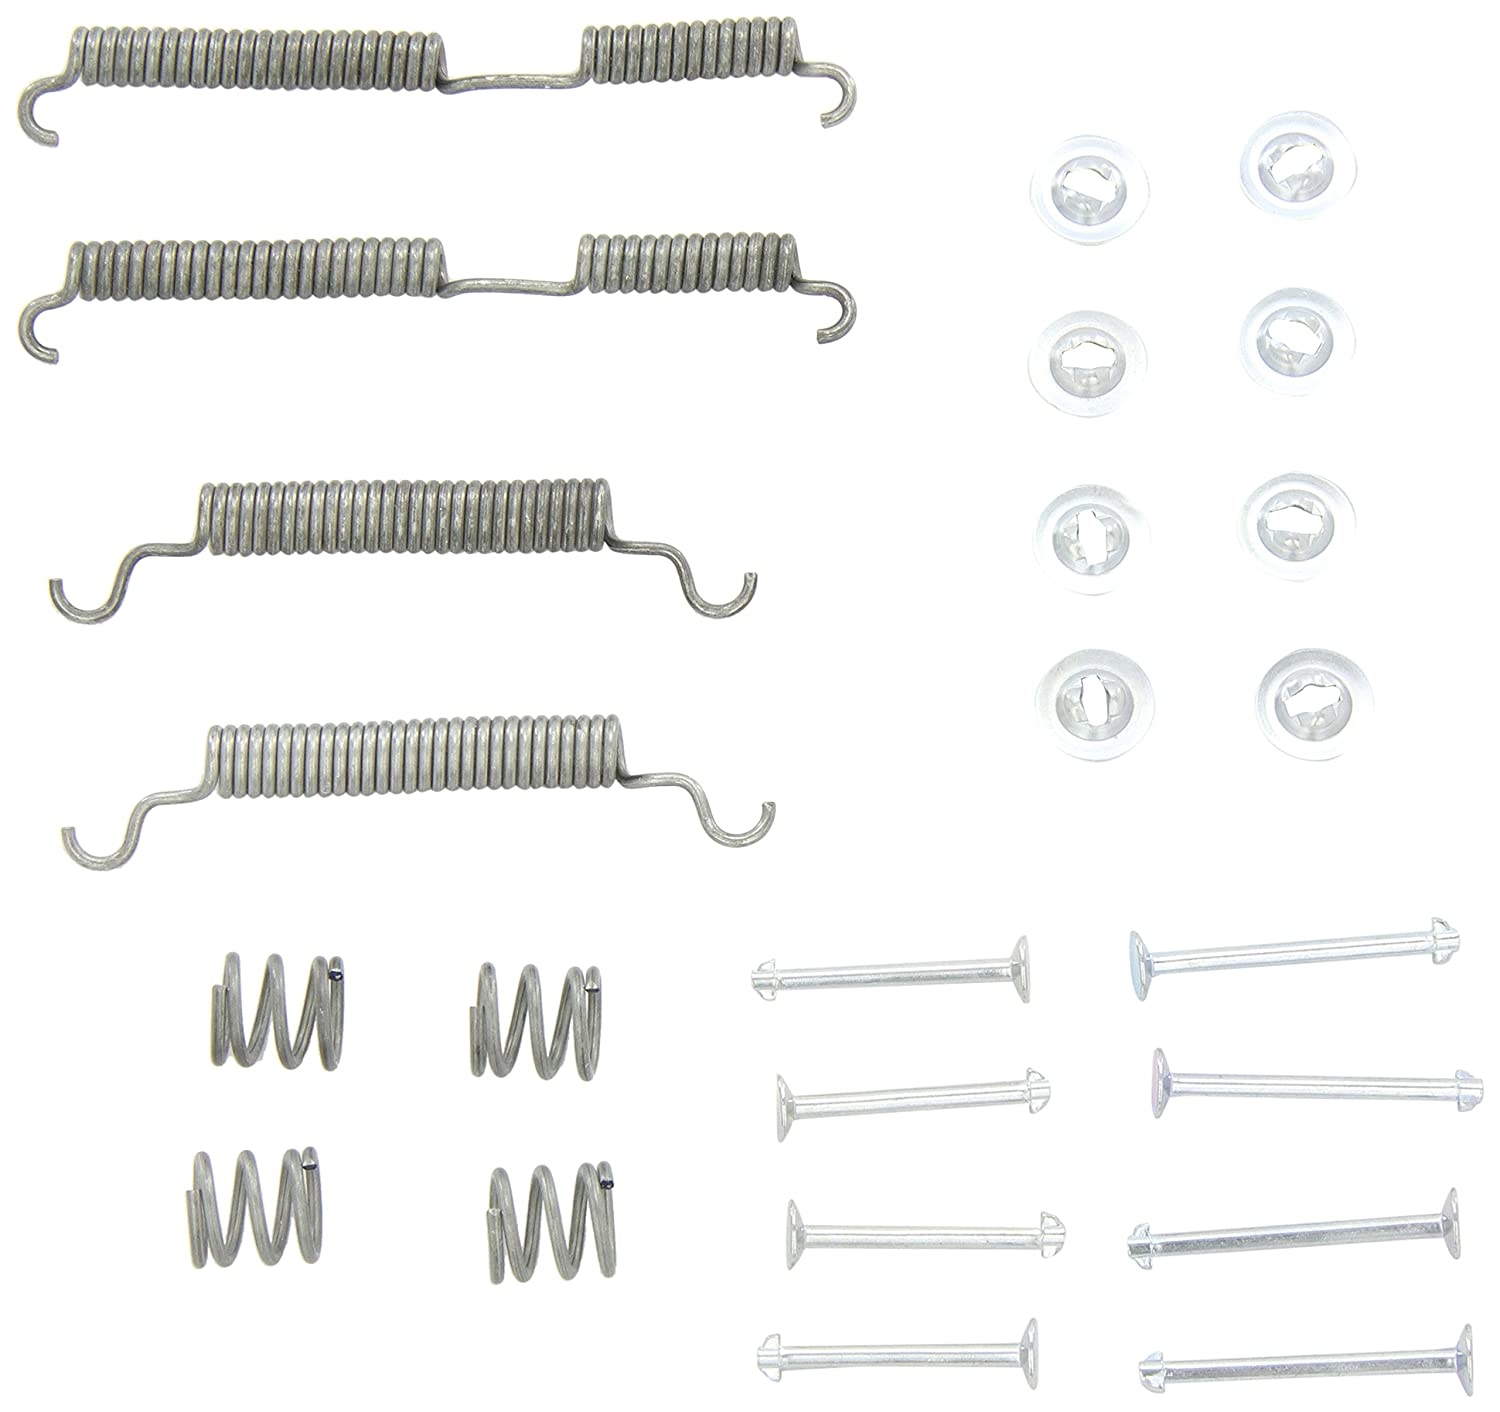 ABS 0513Q Brake Shoes Accessory Kit ABS All Brake Systems bv